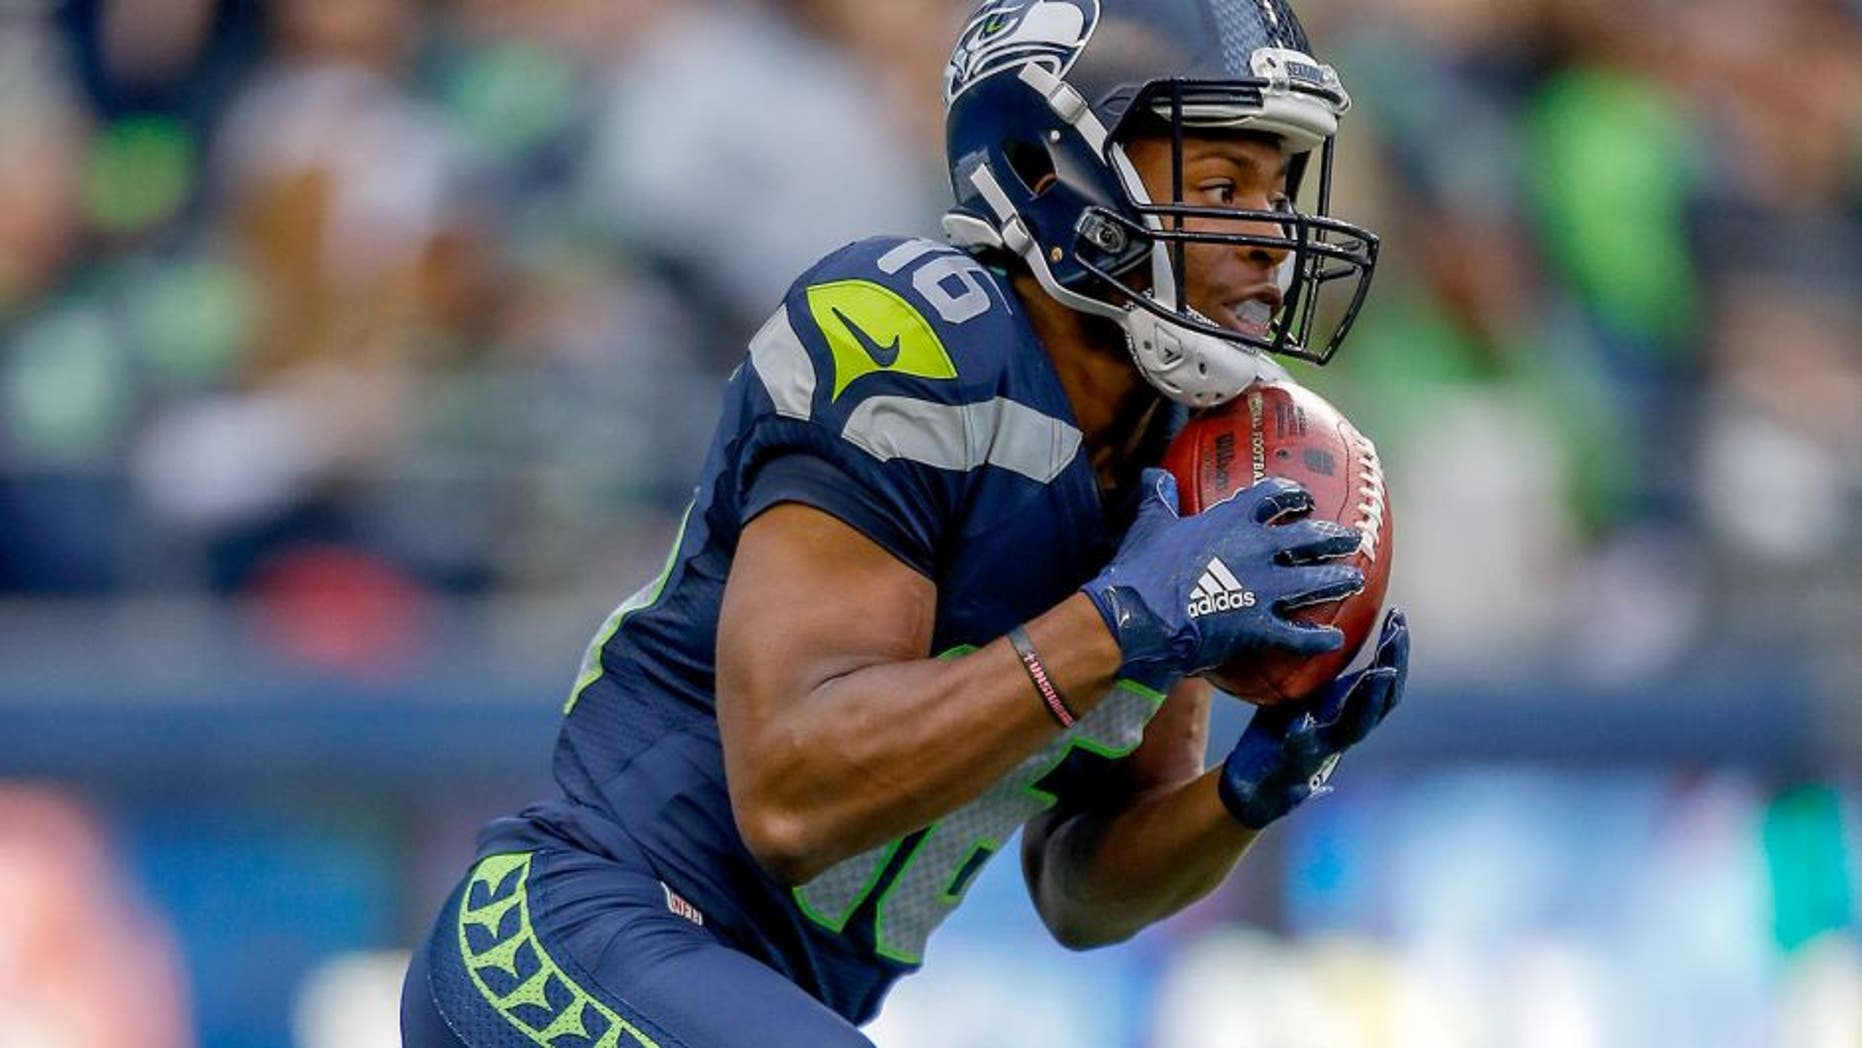 SEATTLE, WA - AUGUST 14: Kick returner Tyler Lockett #16 of the Seattle Seahawks returns a kickoff for a touchdown against the Denver Broncos at CenturyLink Field on August 14, 2015 in Seattle, Washington. (Photo by Otto Greule Jr/Getty Images)